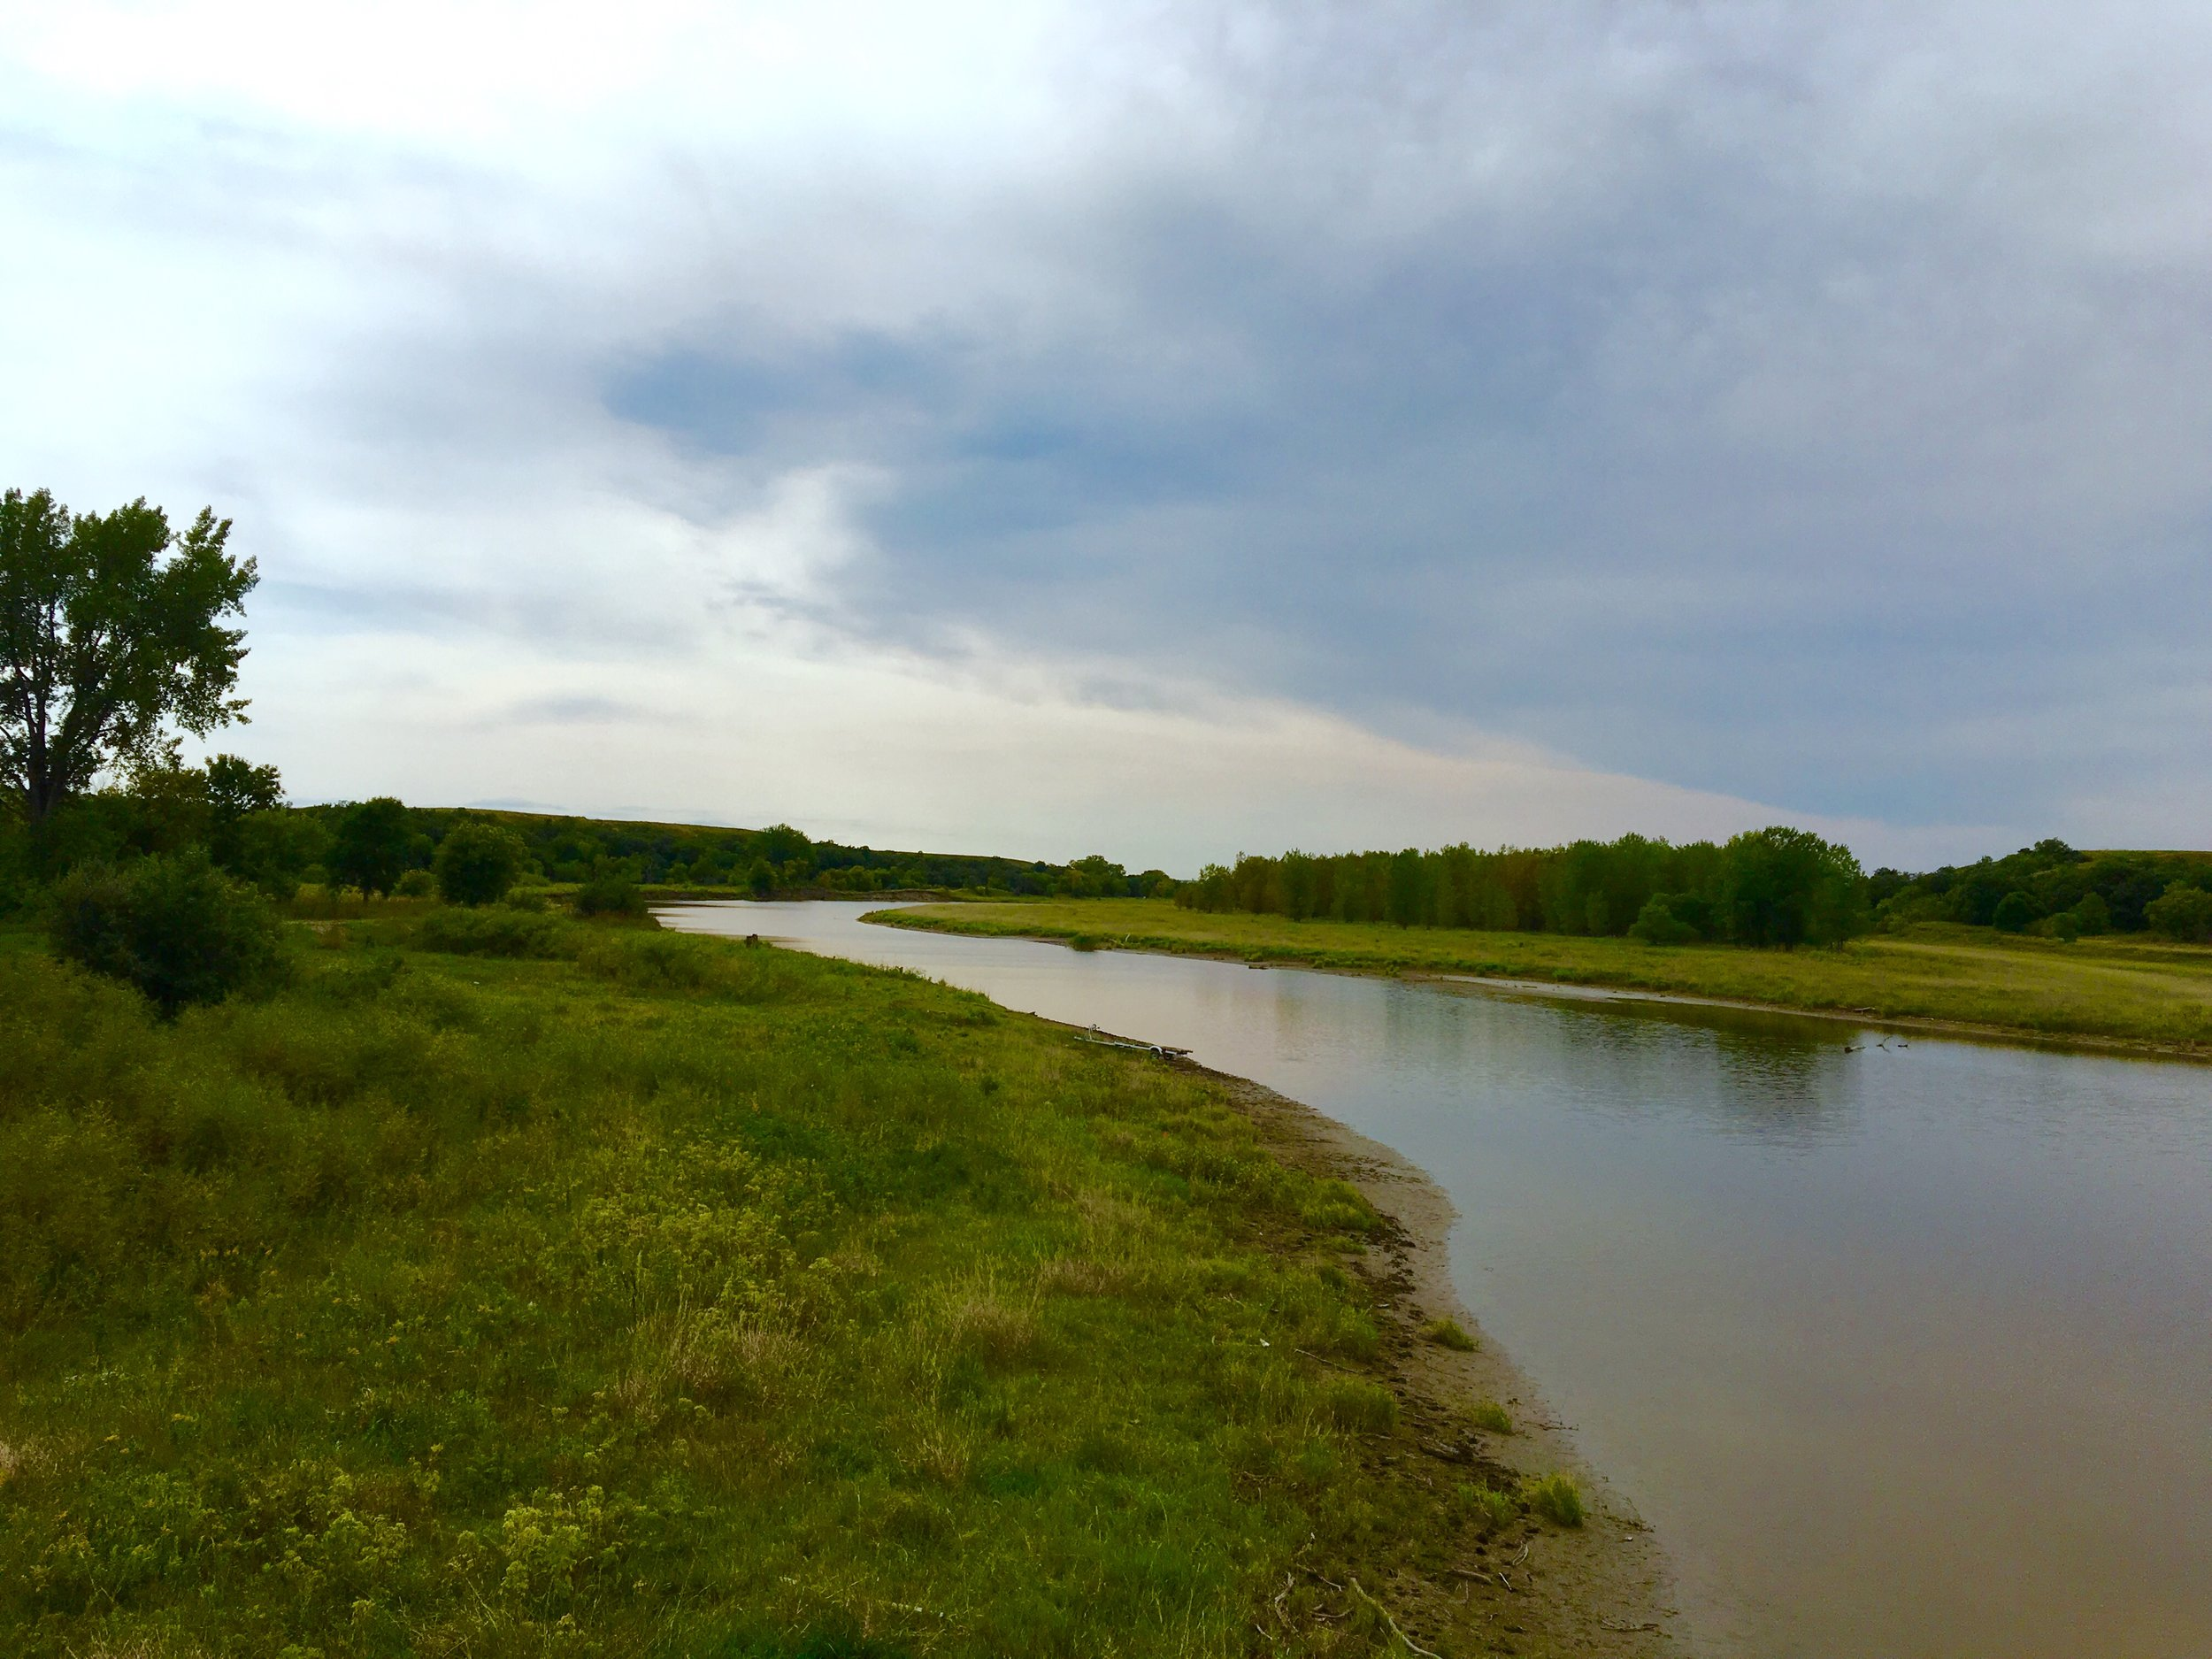 Missouri River, at Sacred Stone Camp,on Tuesday, August 30 (photo by Gabe Galanda)